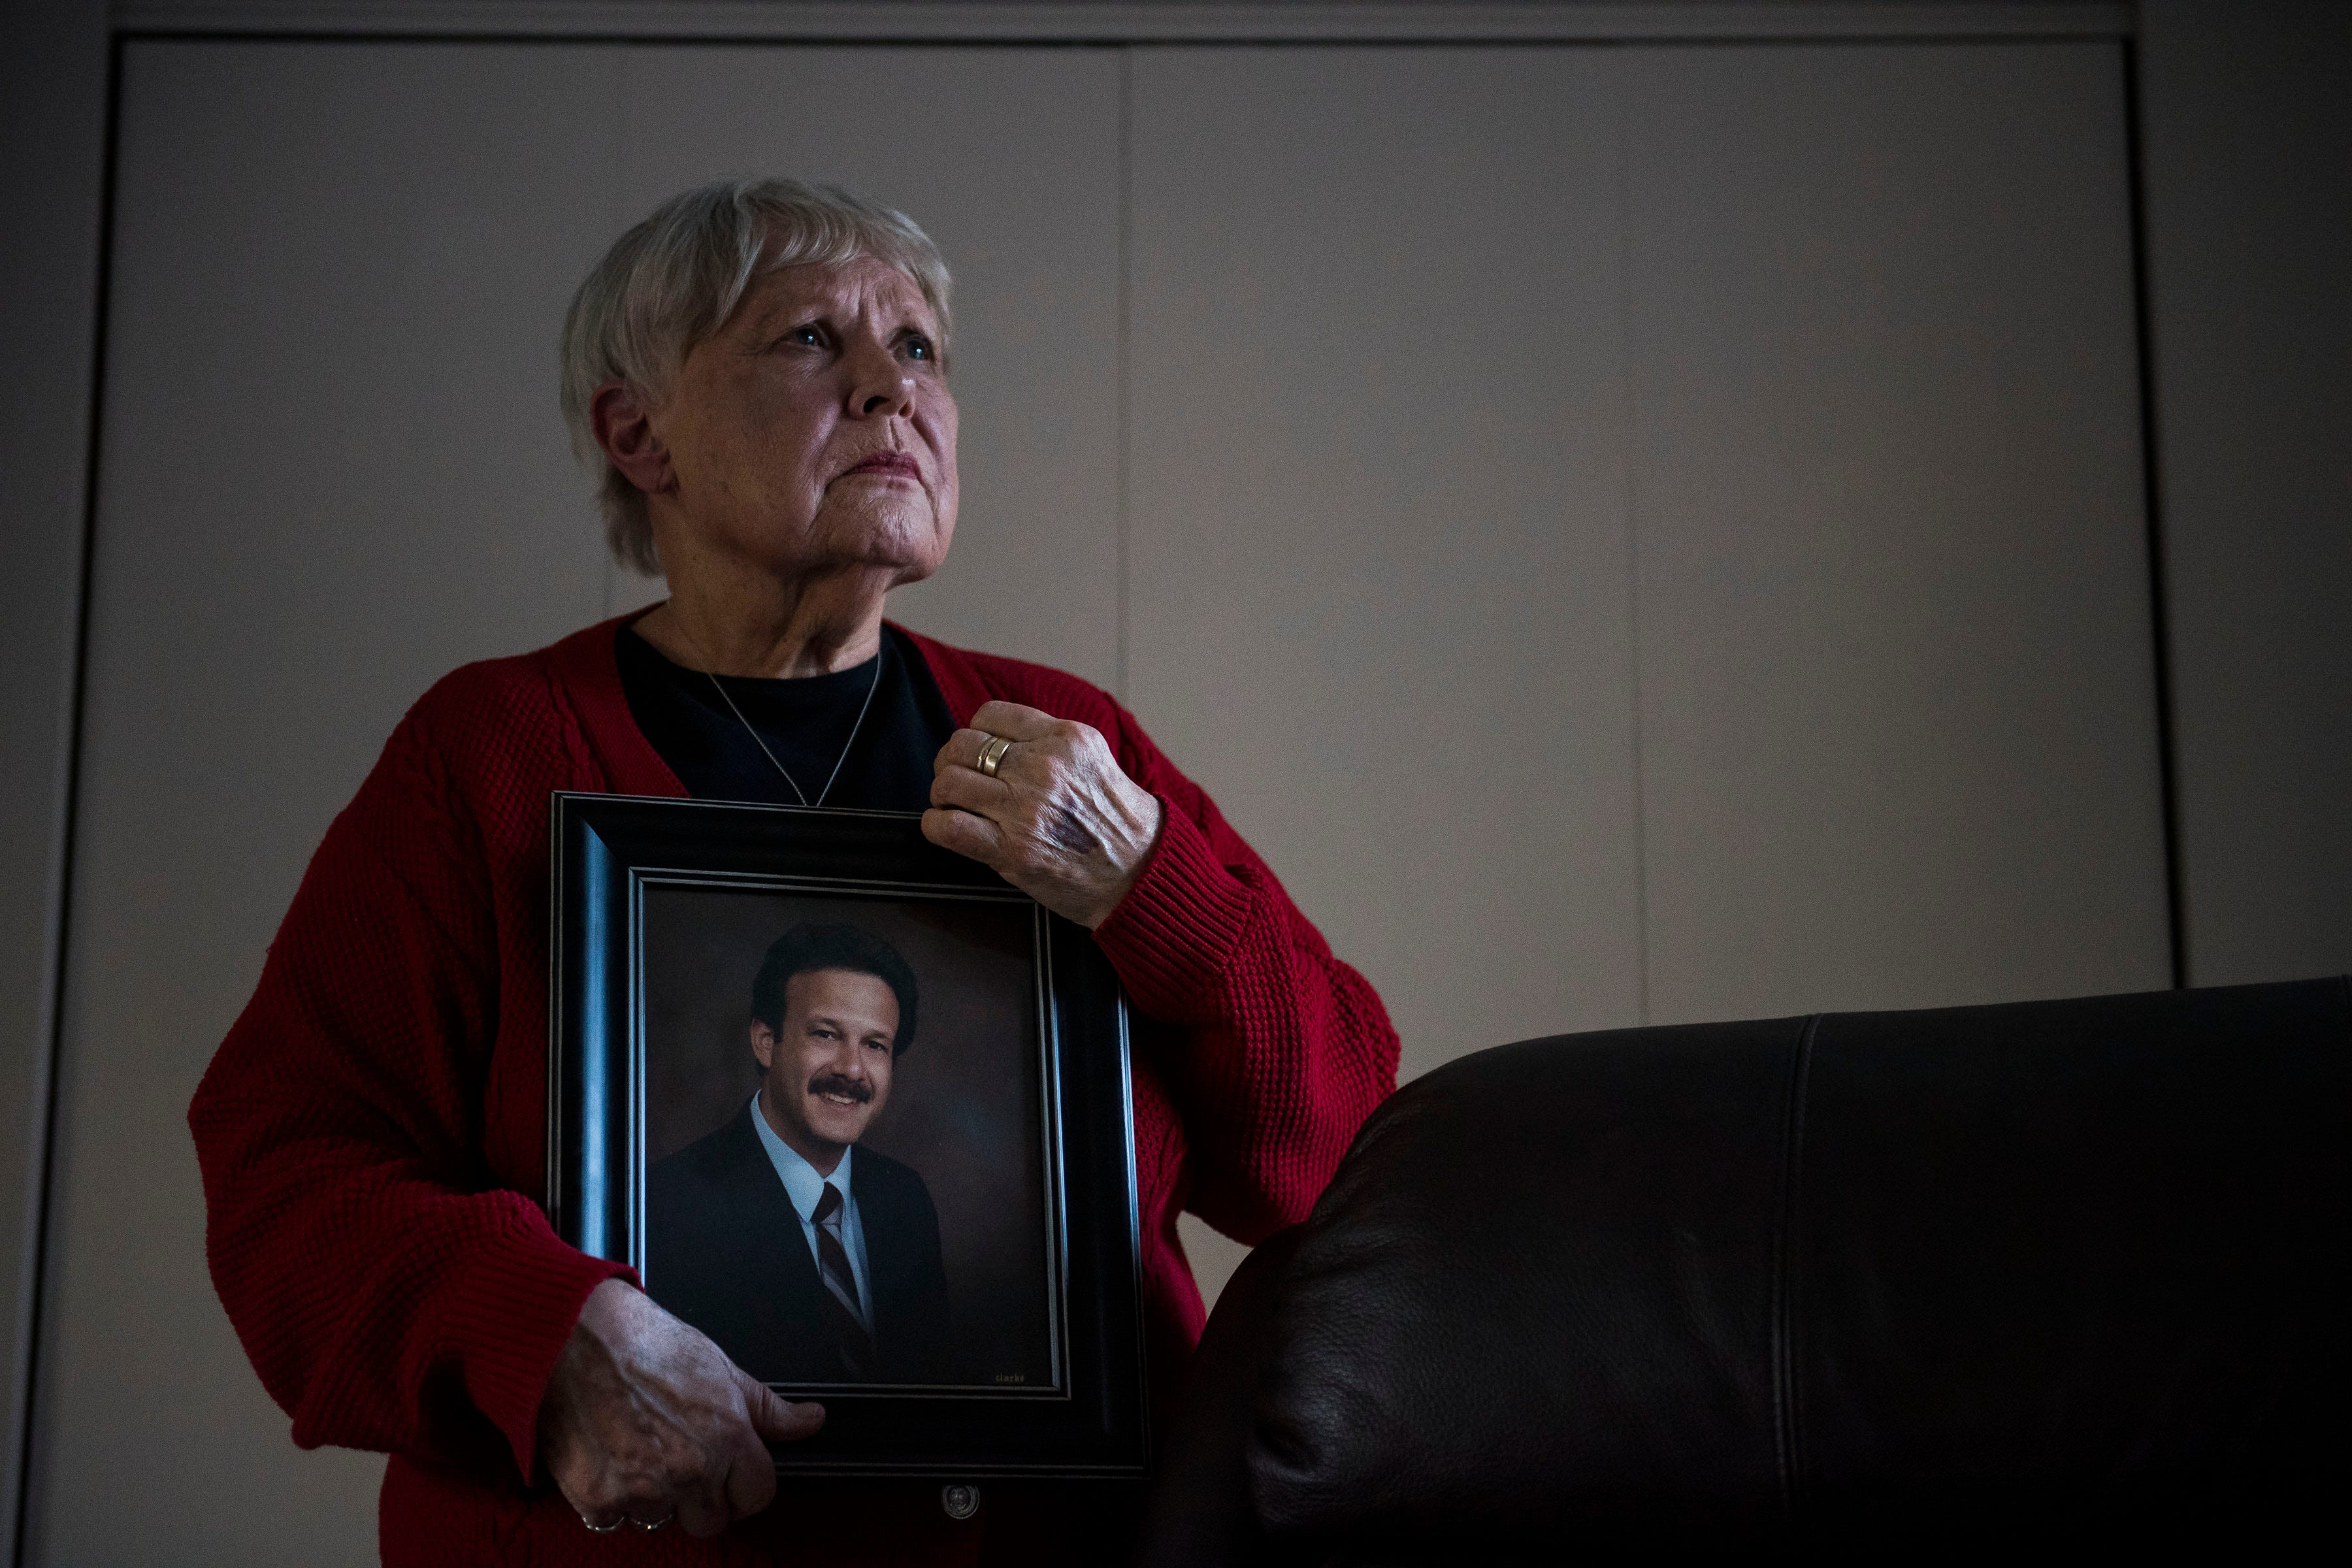 Chris Winokur poses for a portrait with a photo of her late husband, former Fort Collins City Councilman and Mayor, Robert Winokur, on Thursday, Jan. 31, 2019, in Estes Park, Colo.